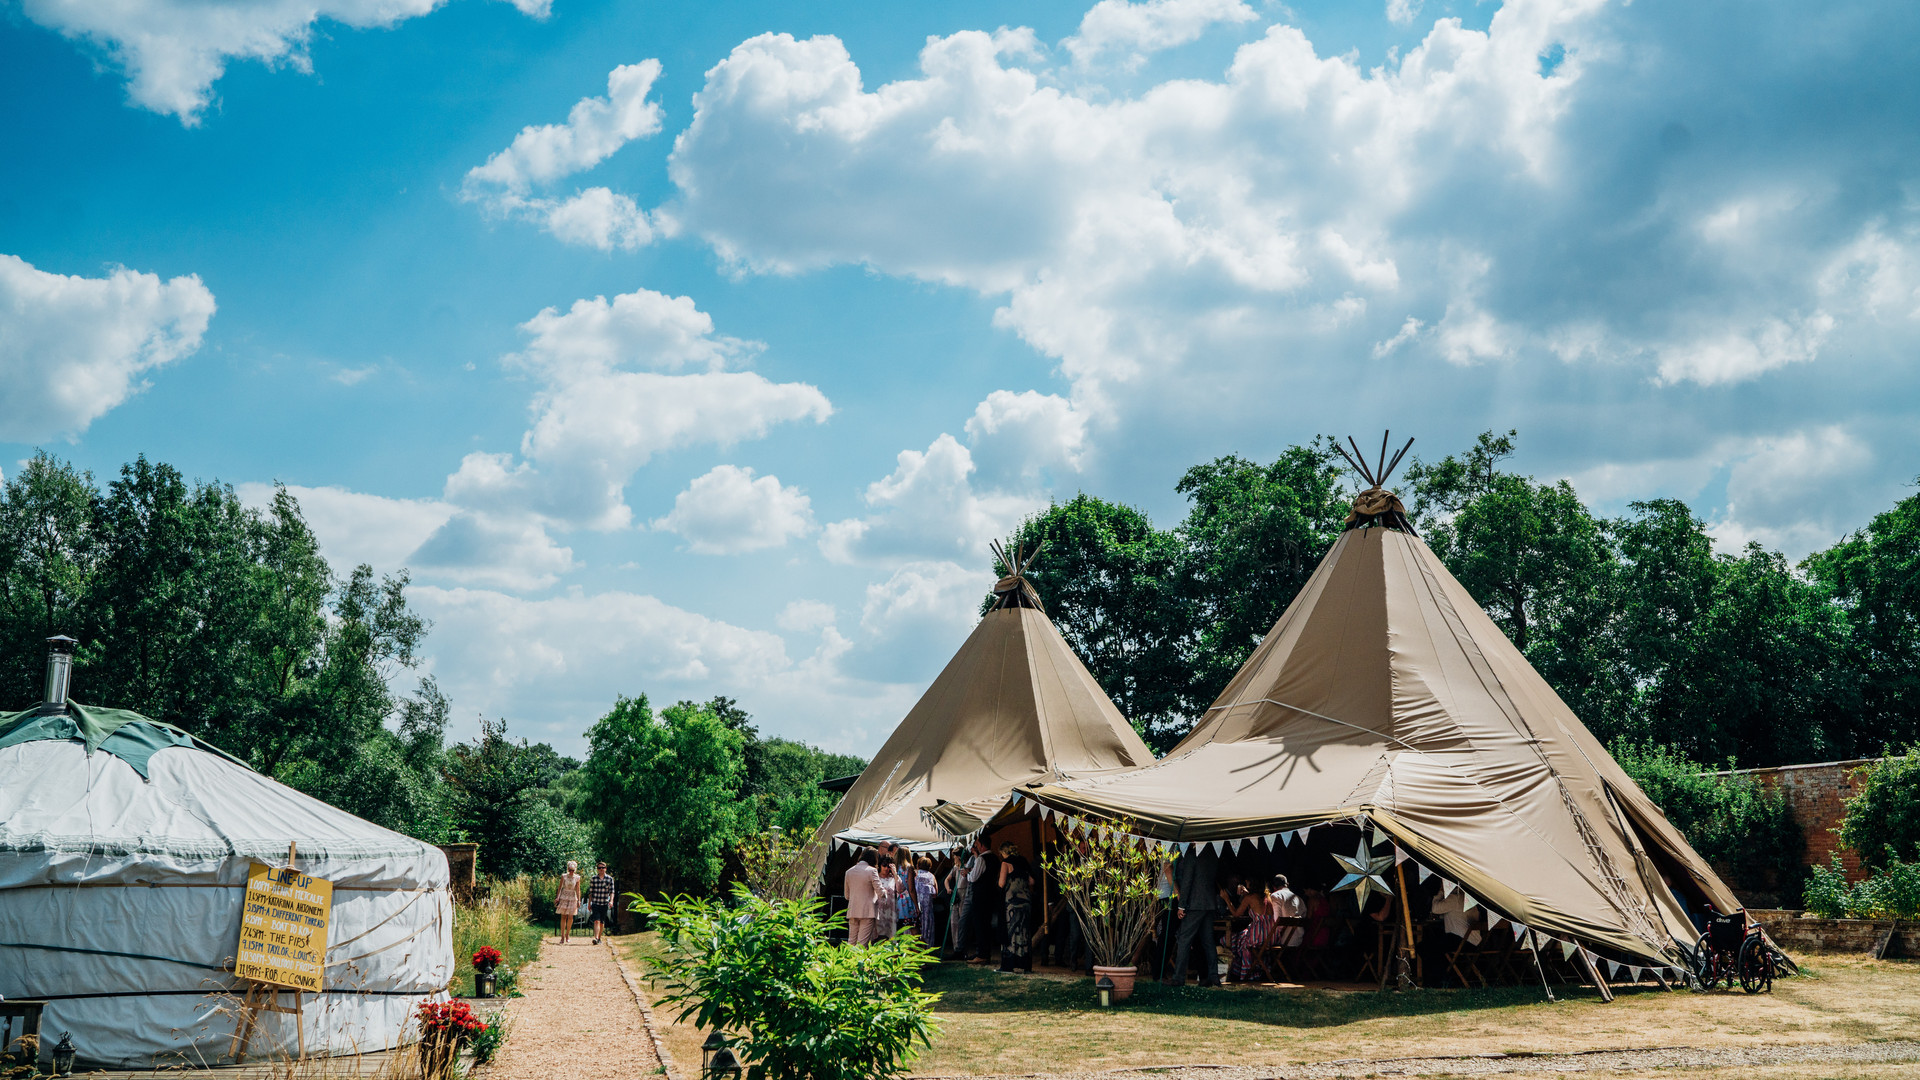 Tipis with diners inside